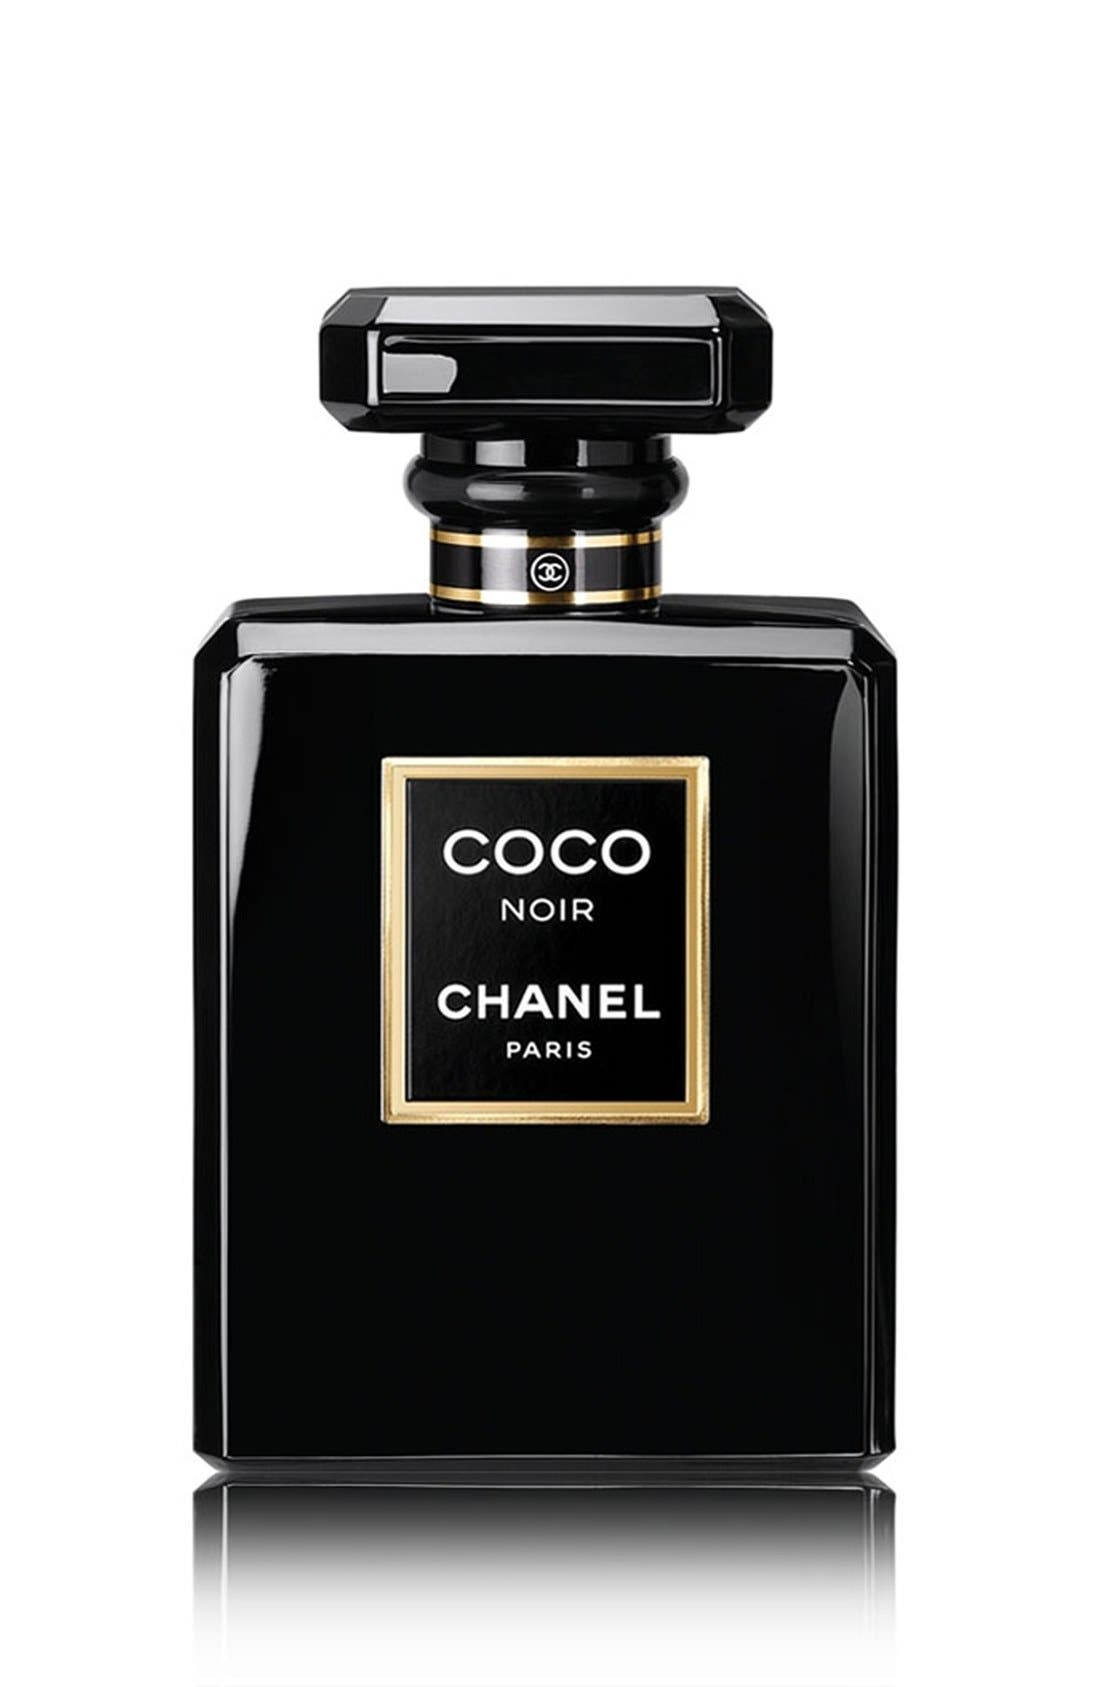 CHANEL COCO NOIR 